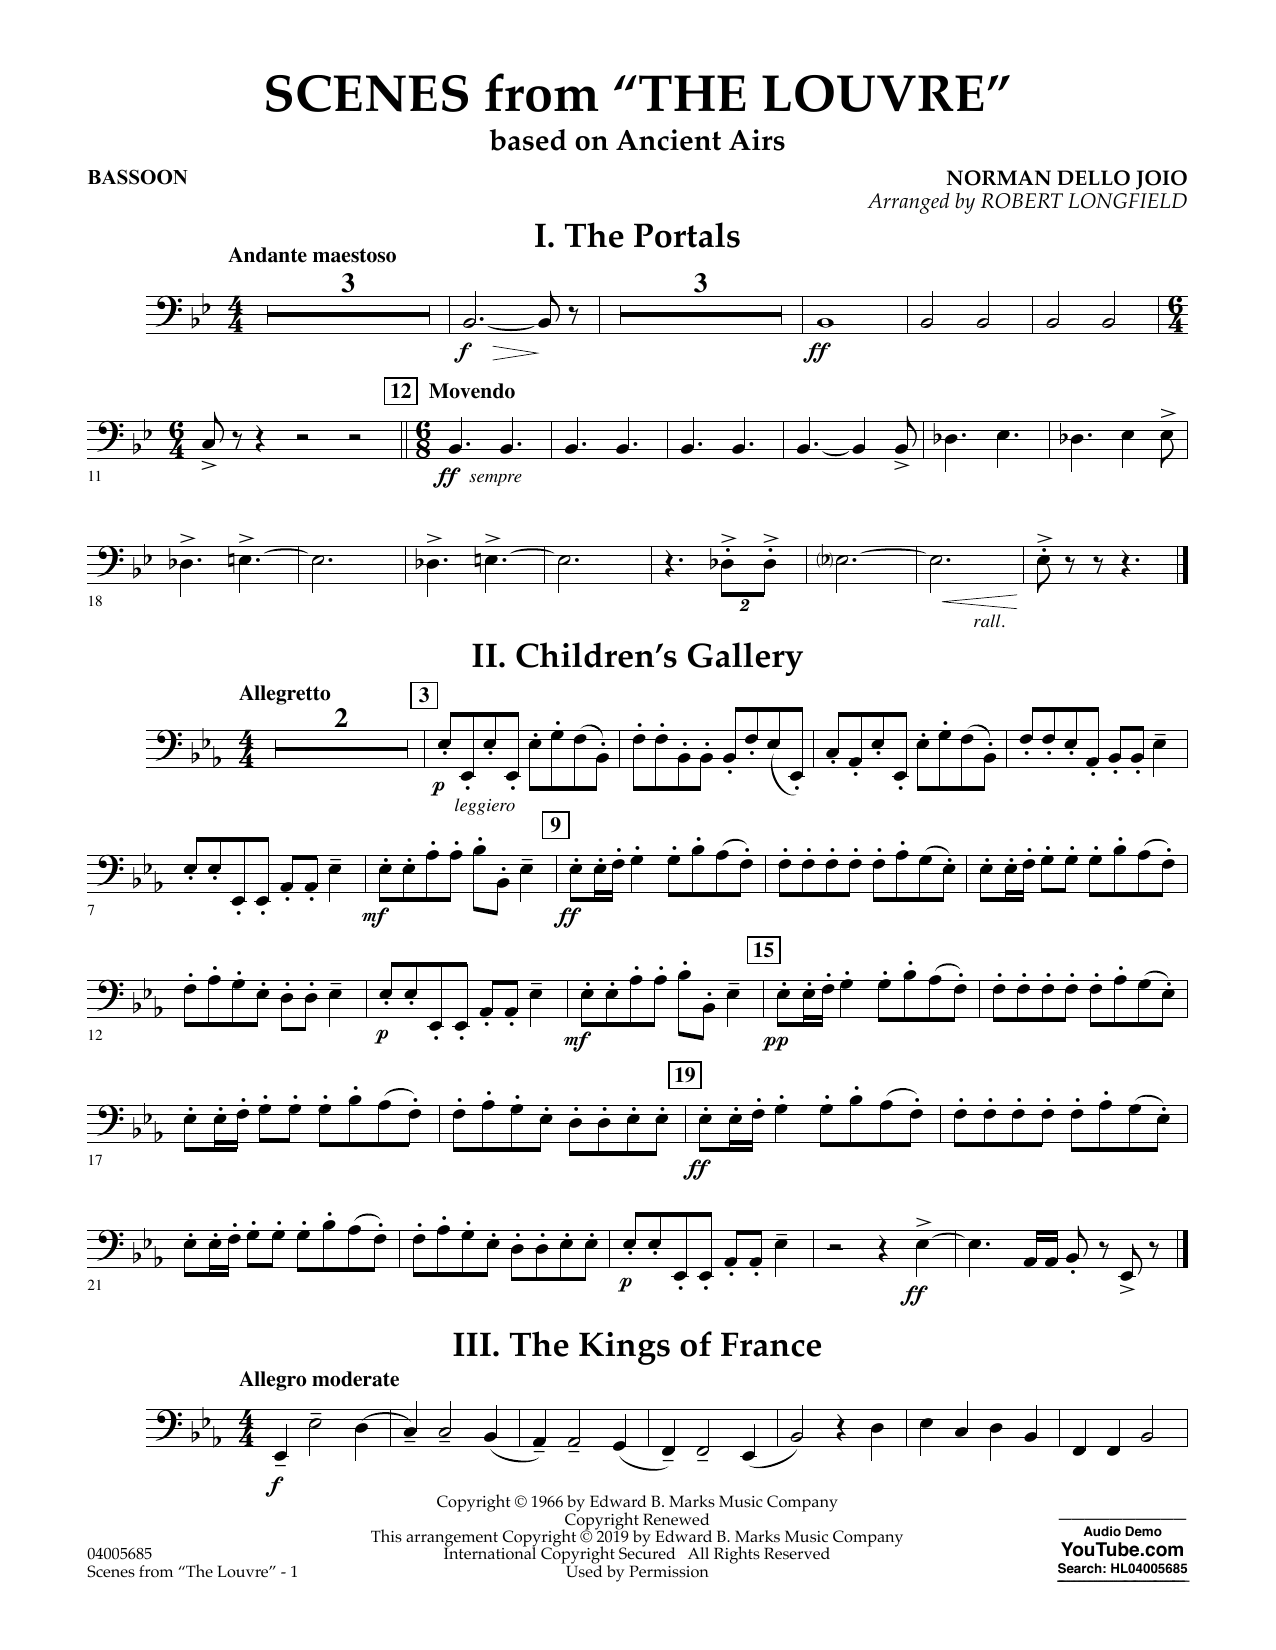 Norman Dello Joio Scenes from the Louvre (arr. Robert Longfield) - Bassoon sheet music preview music notes and score for Concert Band including 2 page(s)